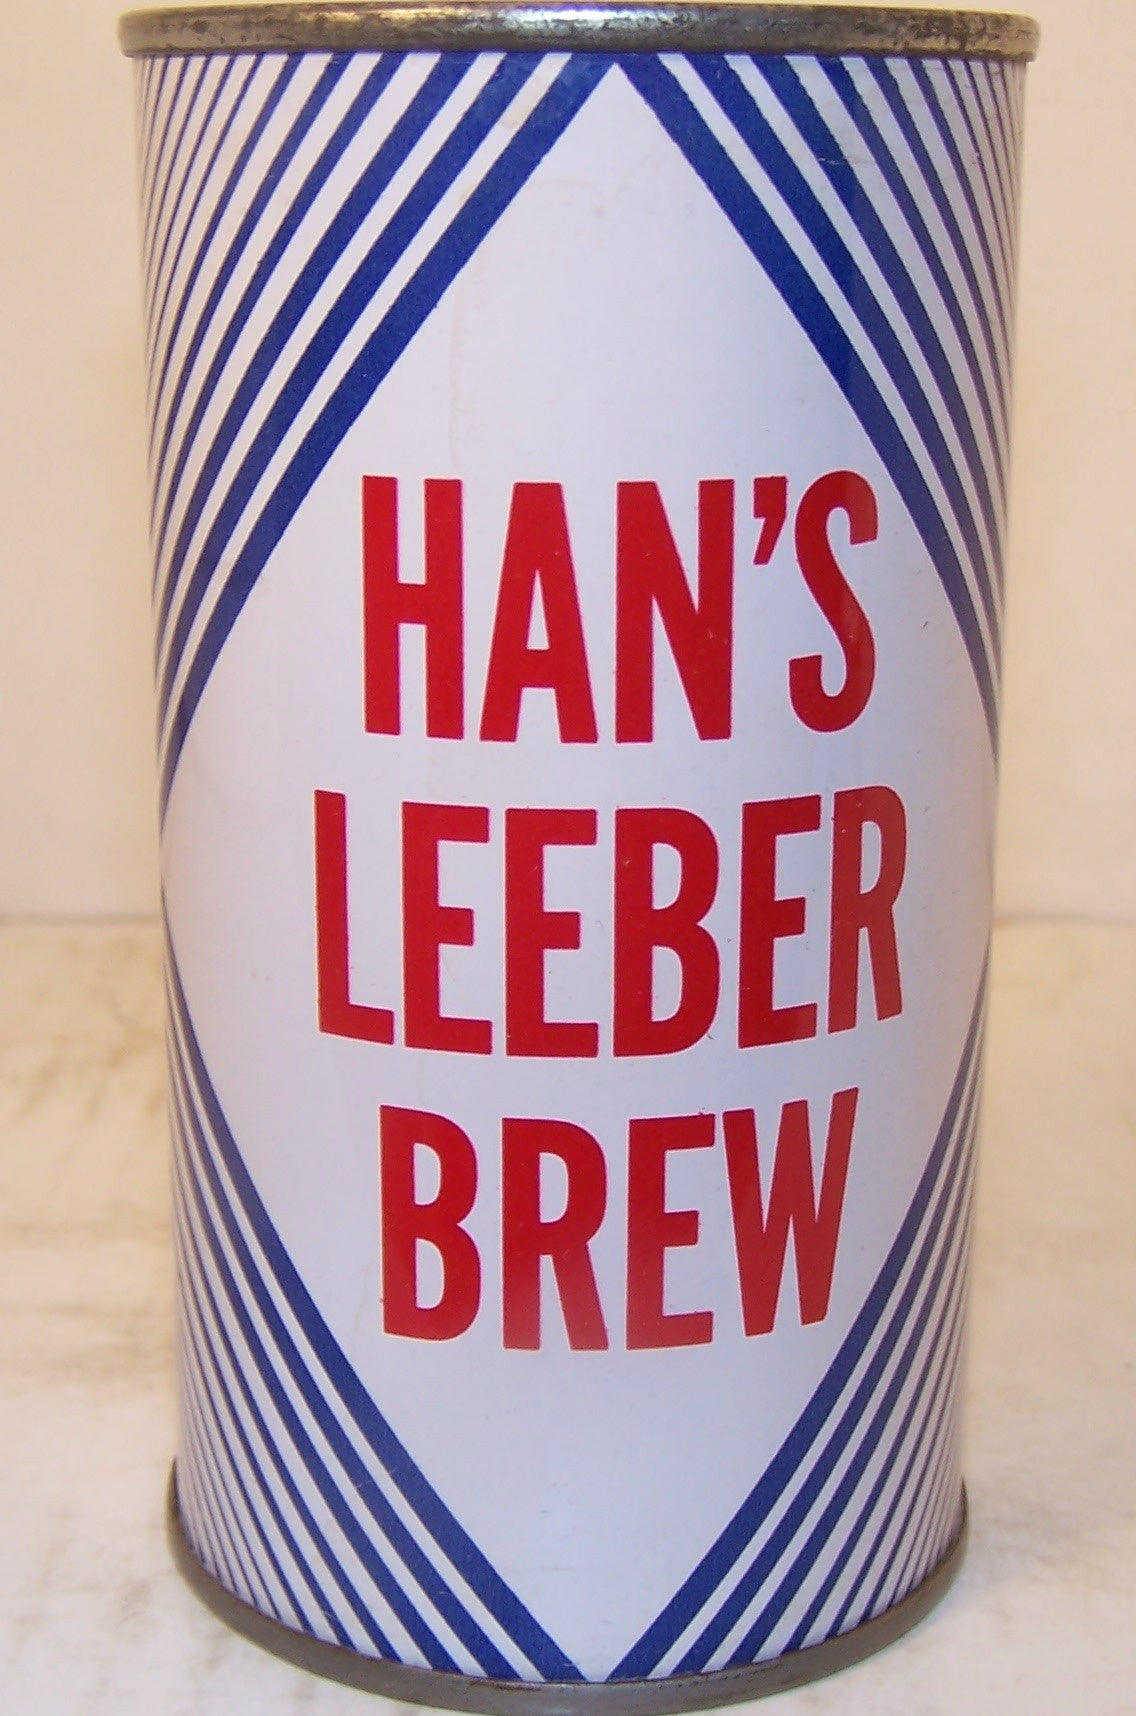 Han's Leeber Brew, USBC 80-12, Grade 1/1+ Traded on 03/06/16